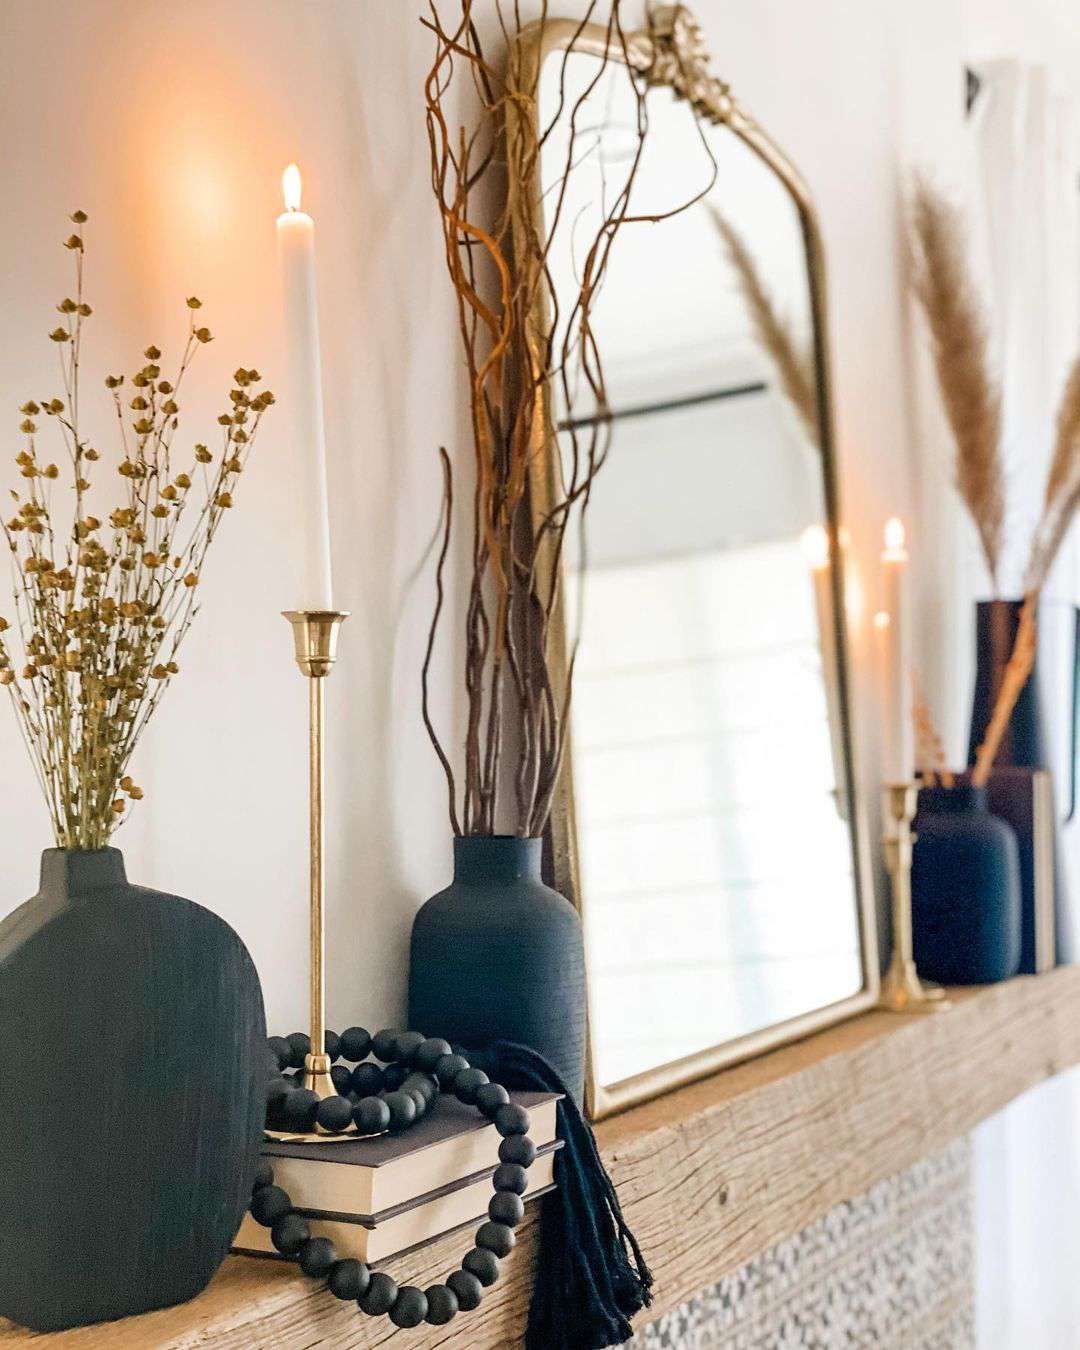 Black vases and beads